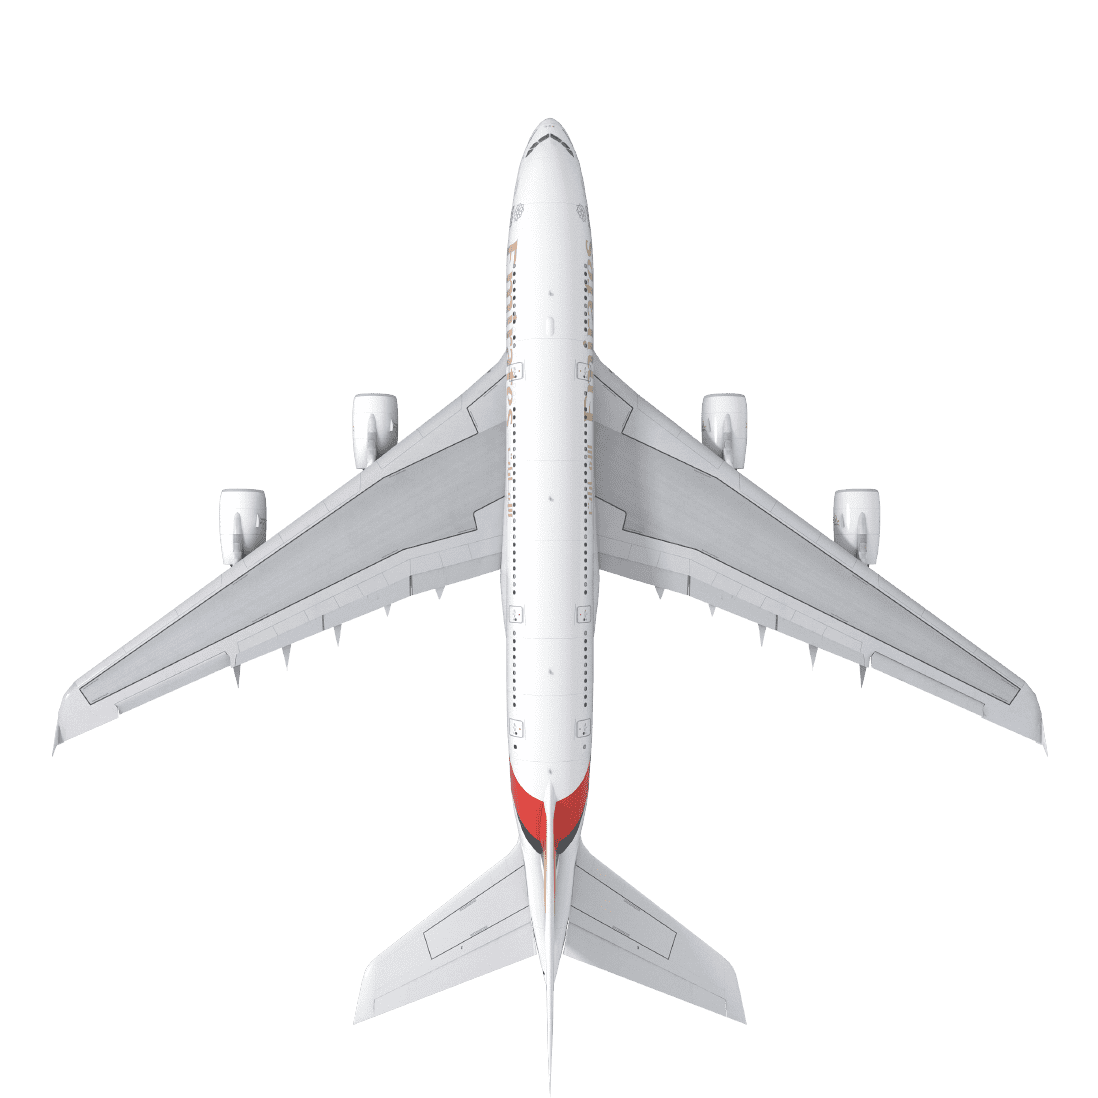 The Emirates A380 fleet | Our fleet | The Emirates Experience